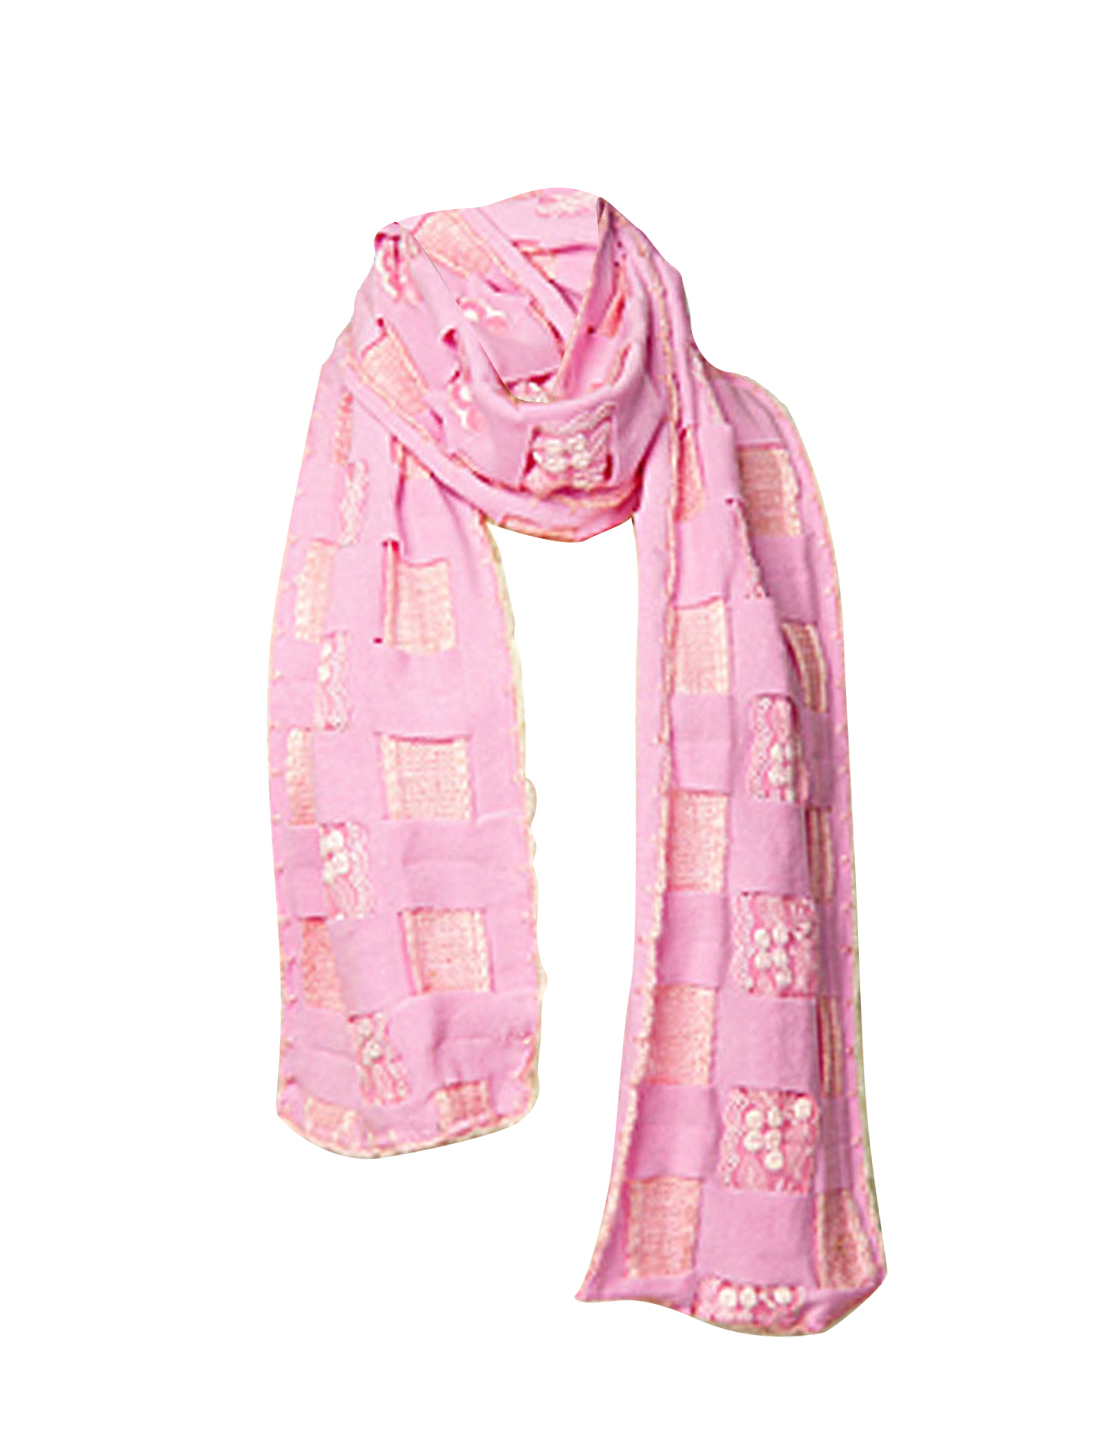 Ladies 174cm Long Light Pink Middle Embroidery Lace Scarf